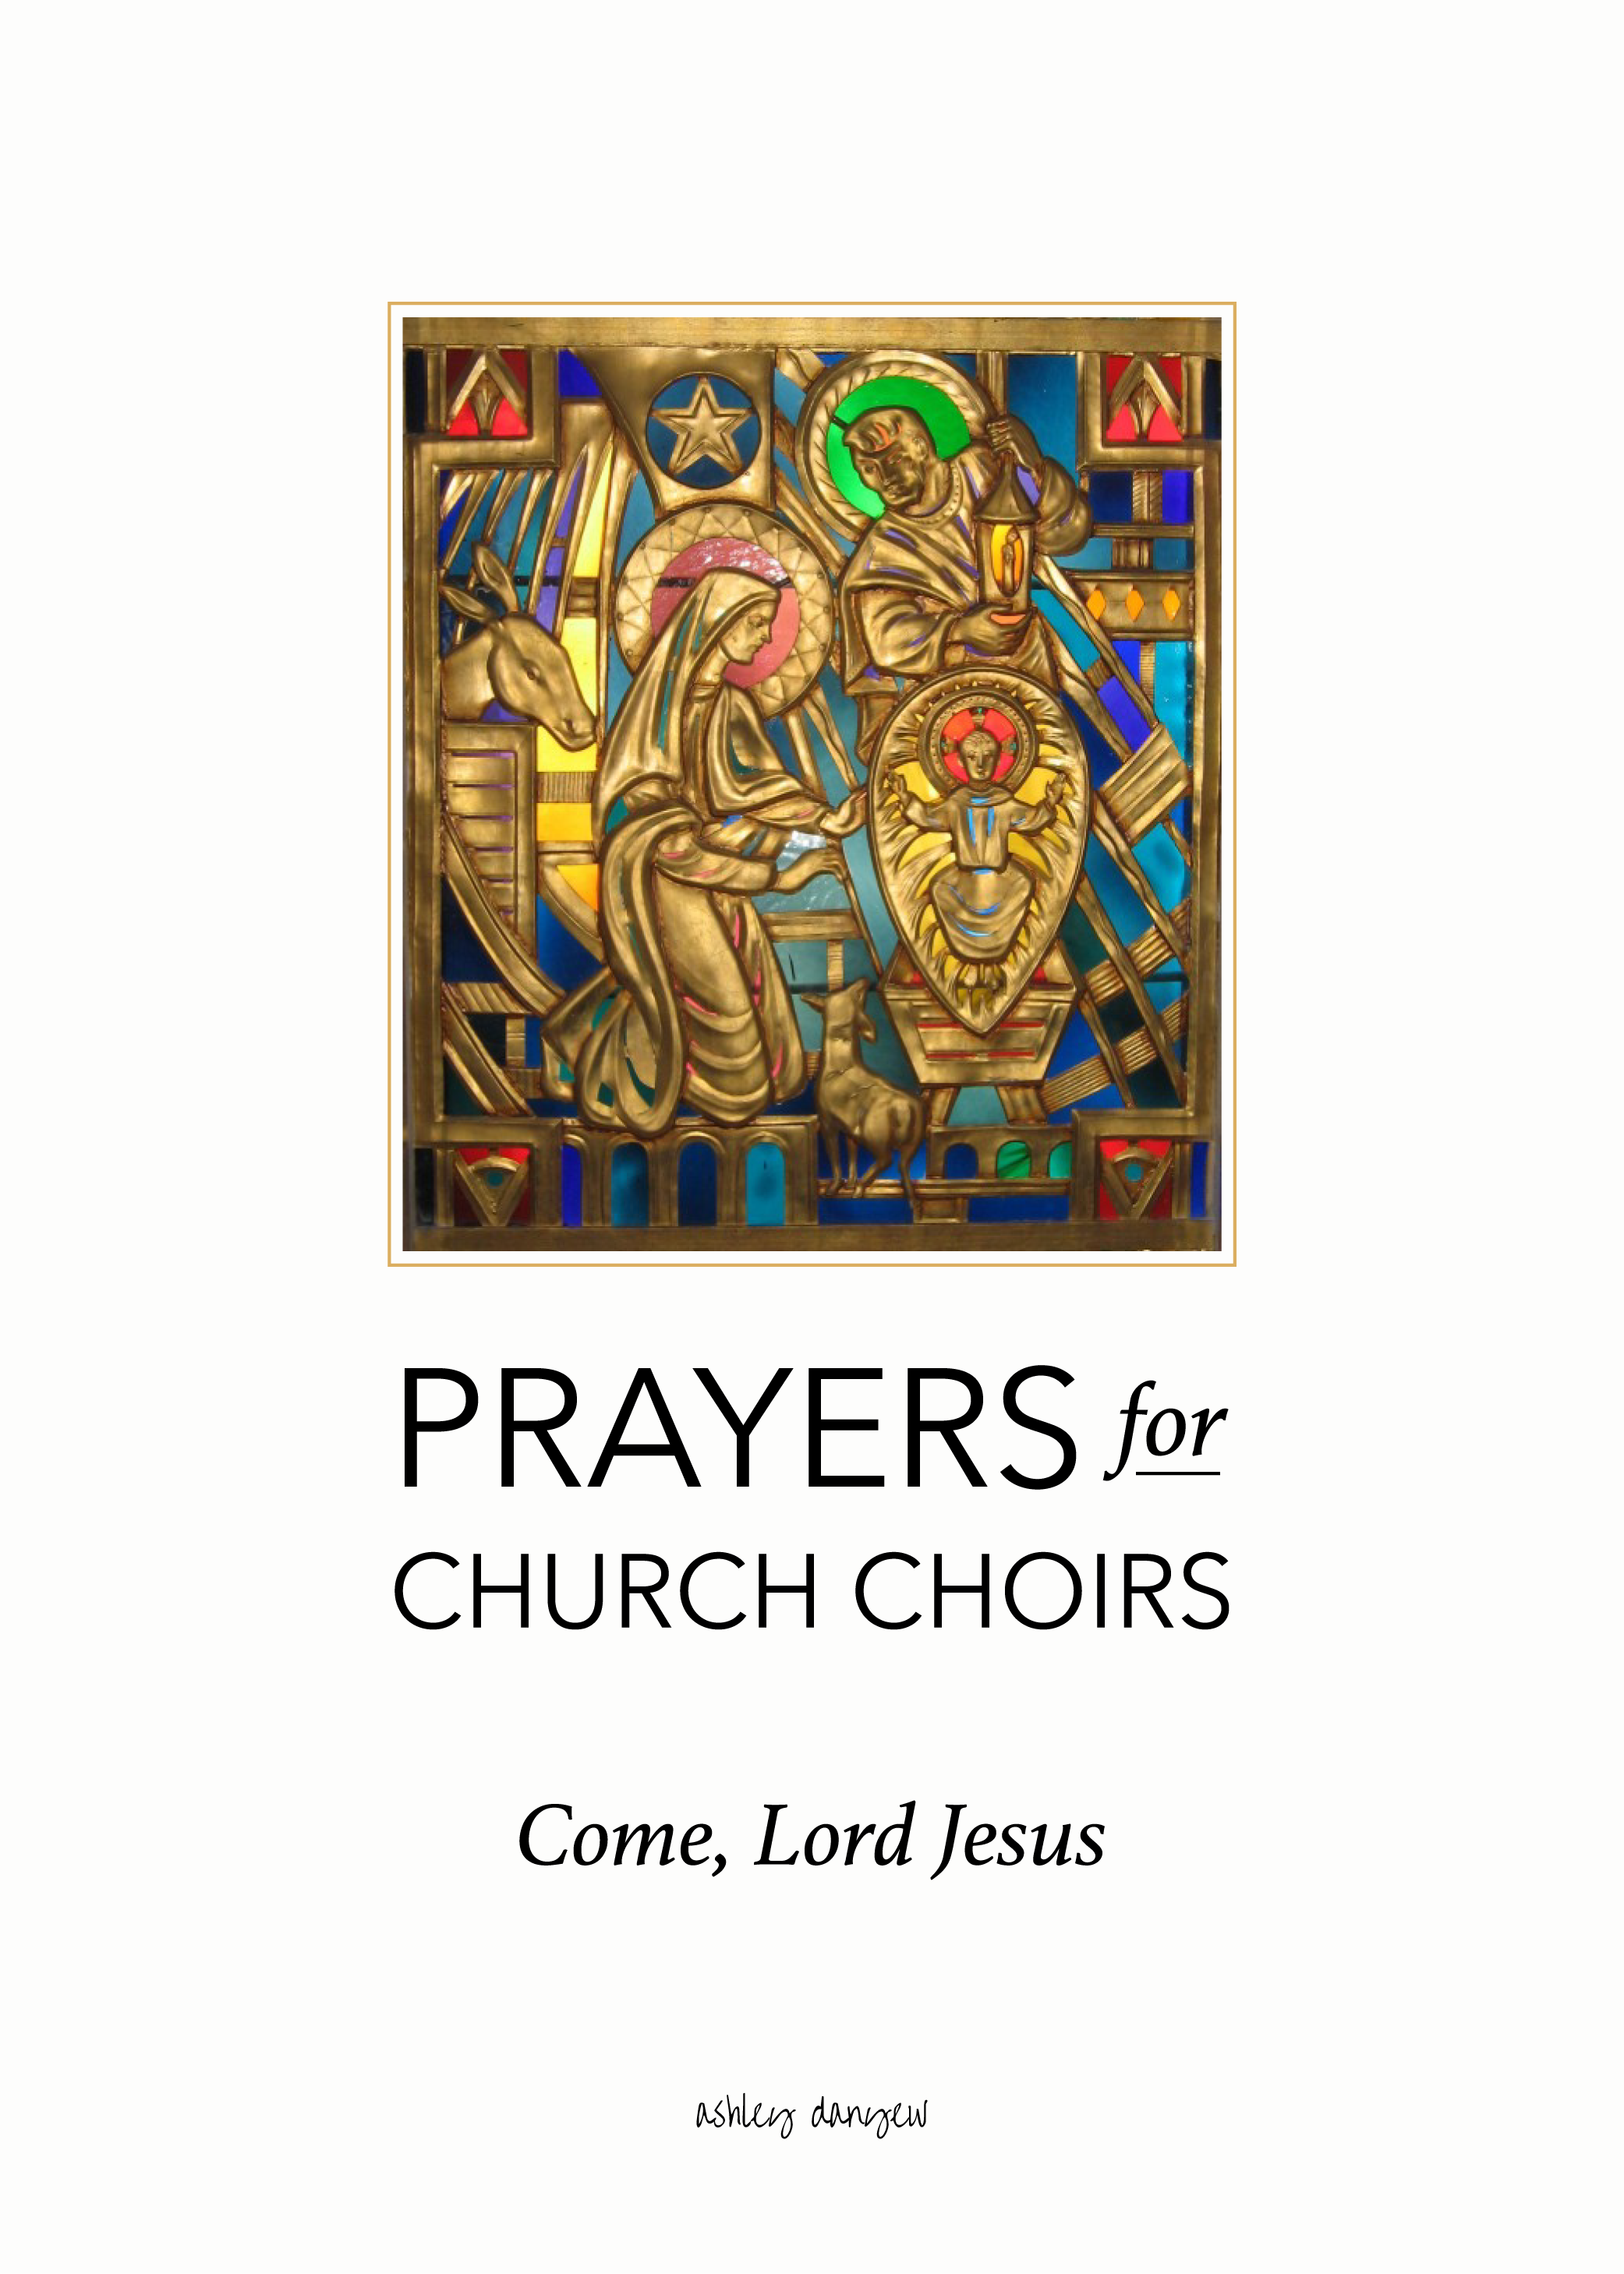 Prayers-for-Church-Choirs_Come-Lord-Jesus-08.png